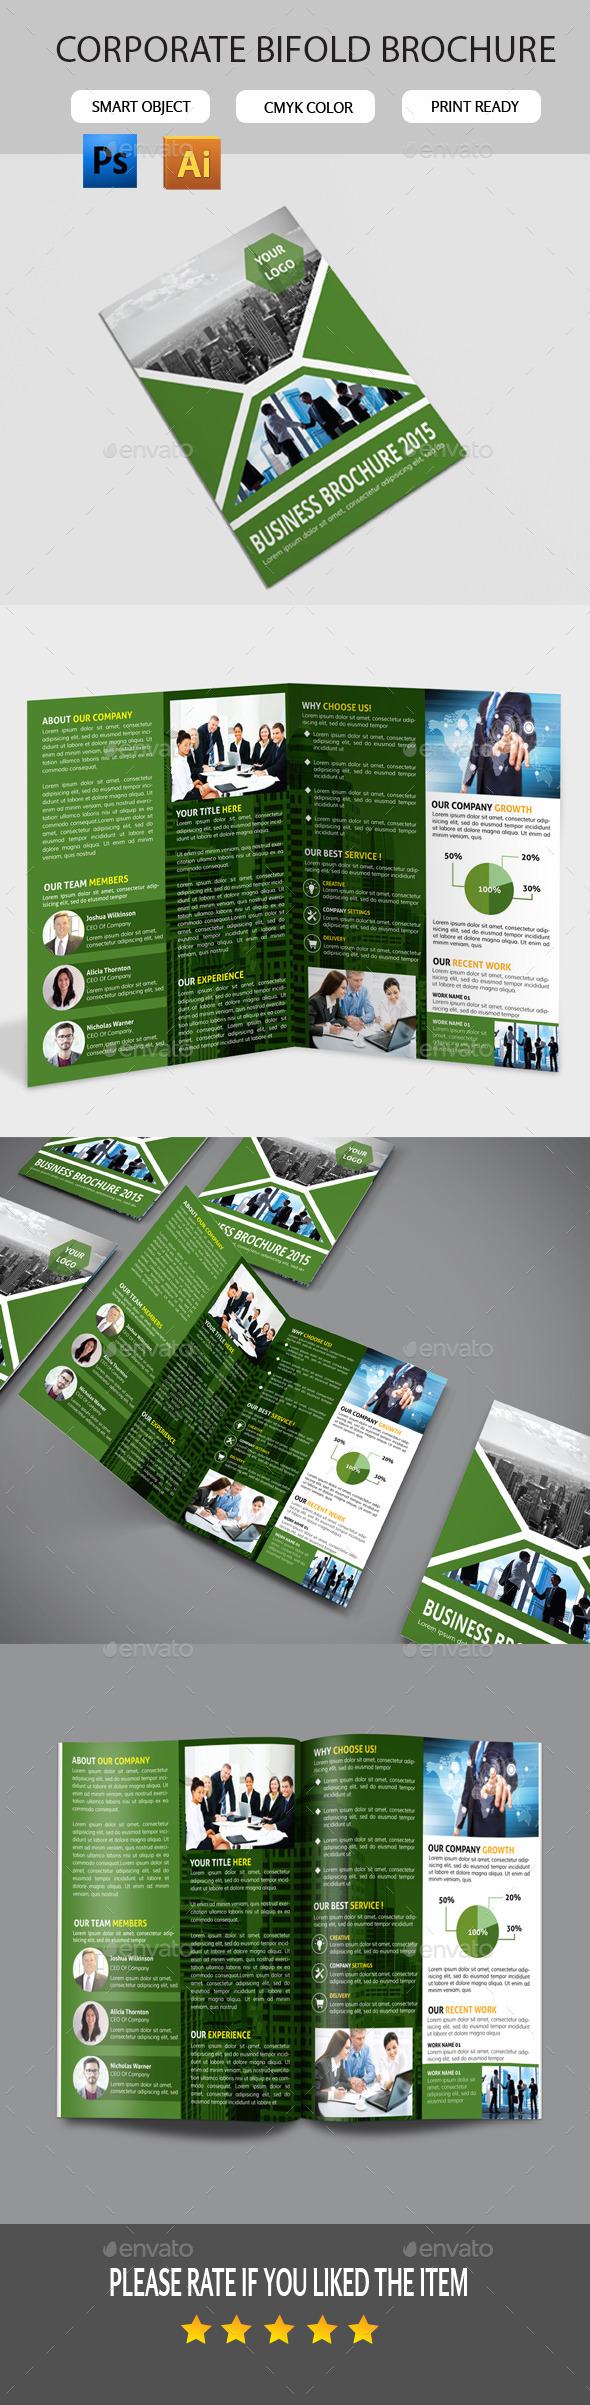 GraphicRiver Corporate Bifold Brochure 11284346